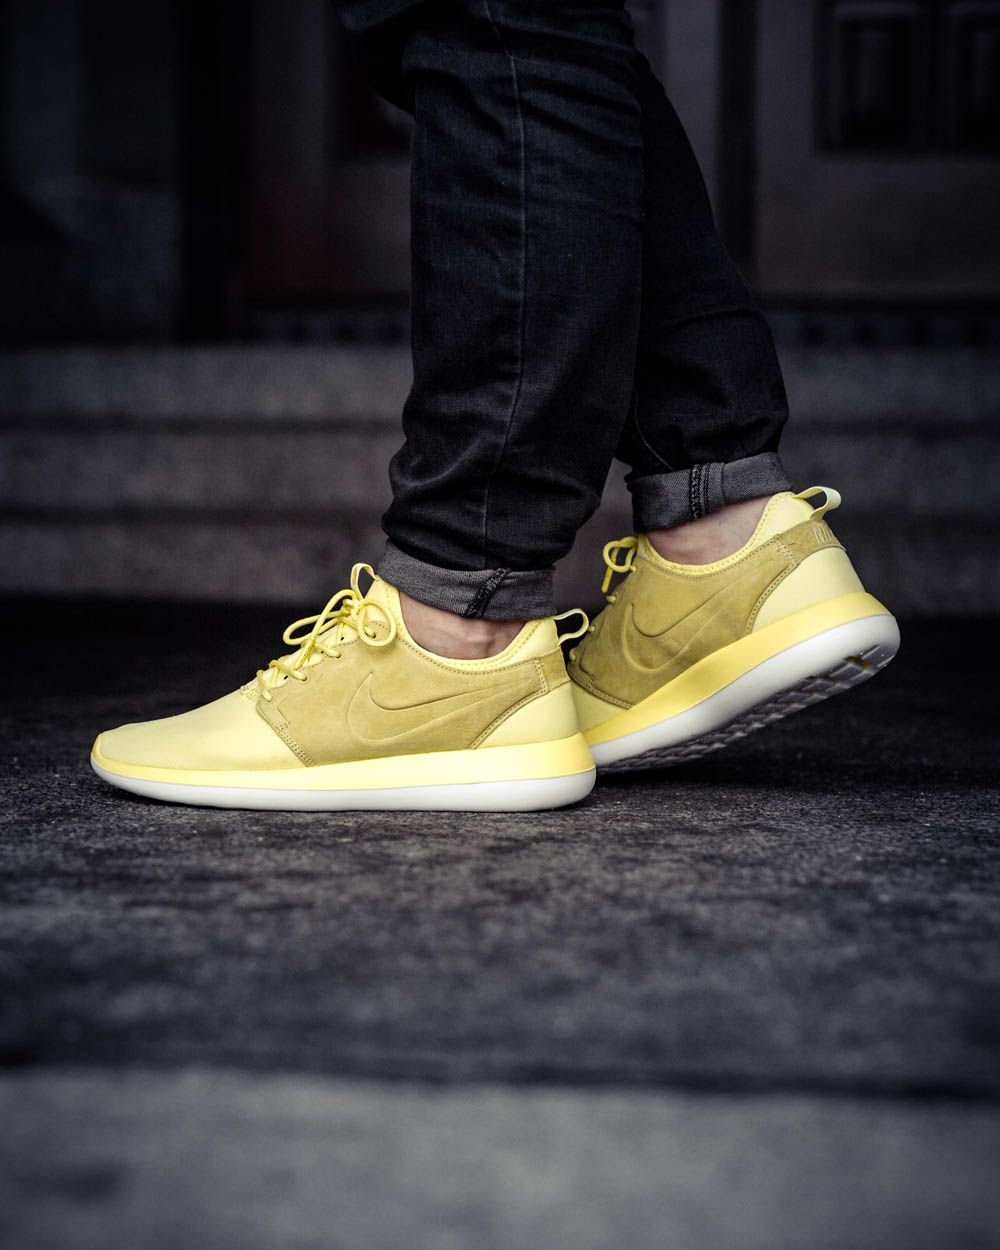 official photos c9cd7 bcbcf NIKE Roshe Two Breeze  Lemon Chiffon